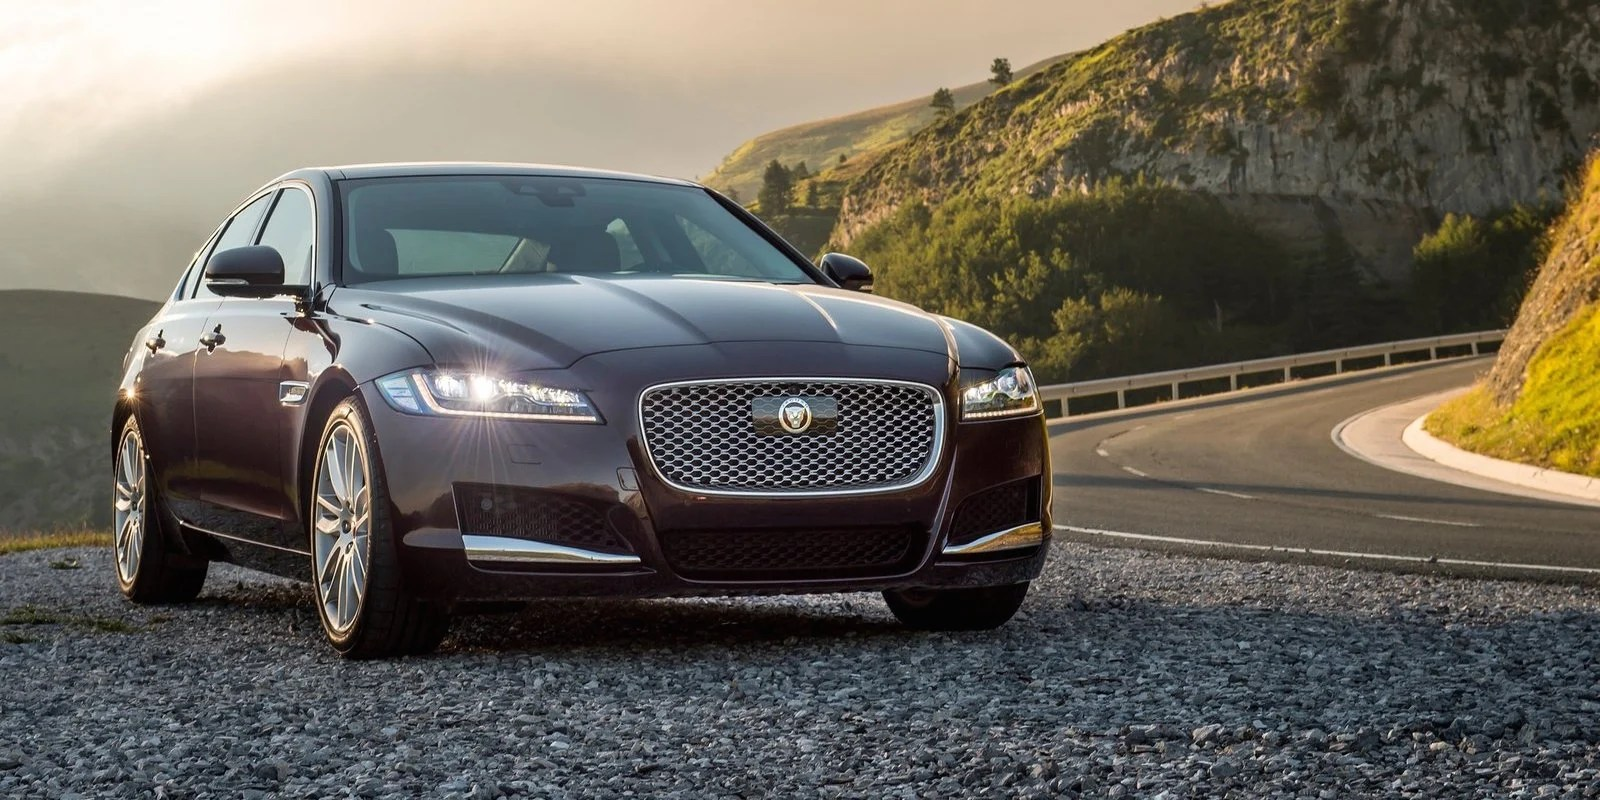 Jaguar Cars News 2016 Jaguar New Cars Photos 1 Of 5